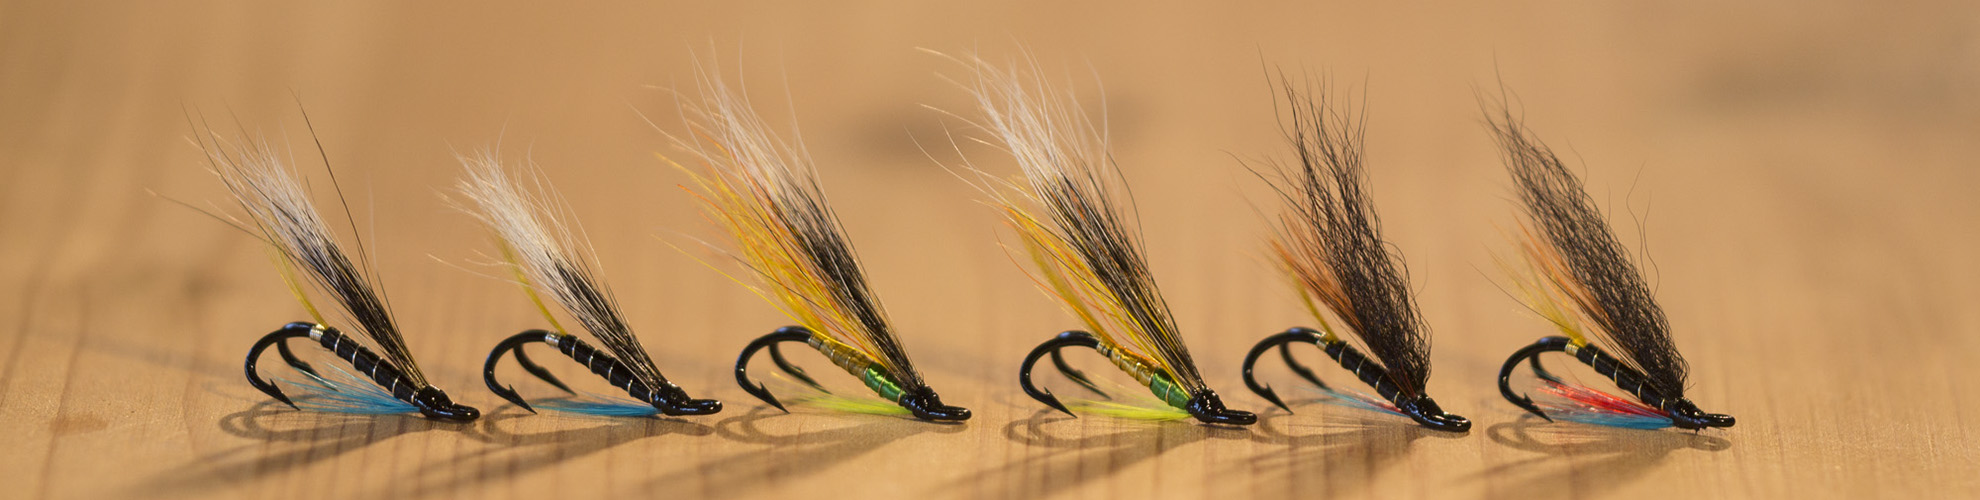 Rosen-fly-fishing-blog-00012